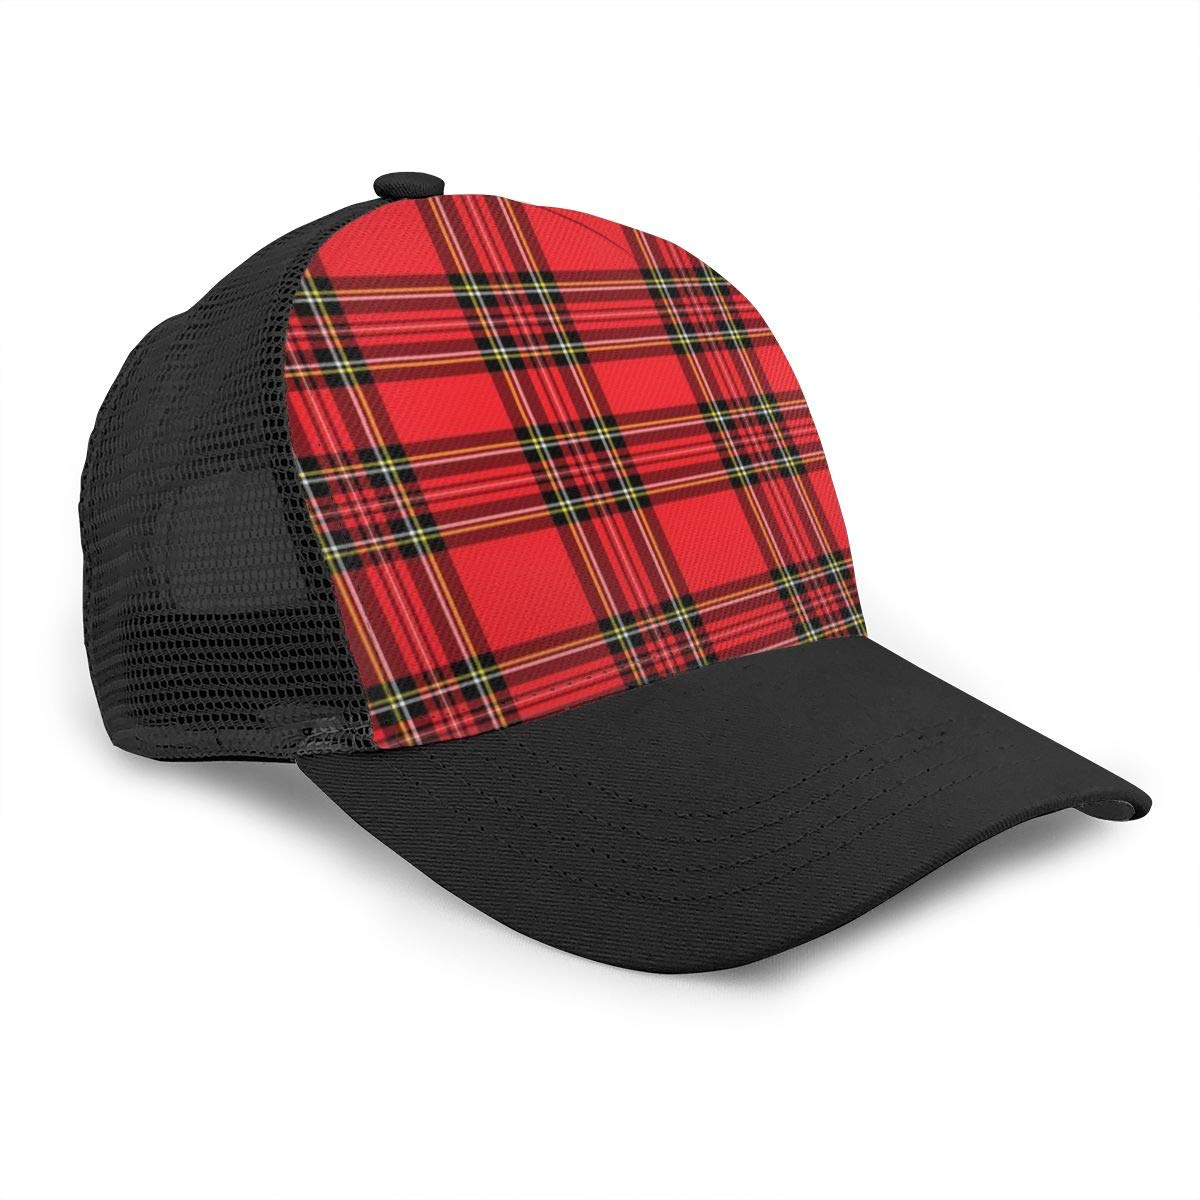 Adjustable Trucker Hat for Unisex Mens and Womens SarahKen Red and Black Plaid Pattern Flat Baseball Hat